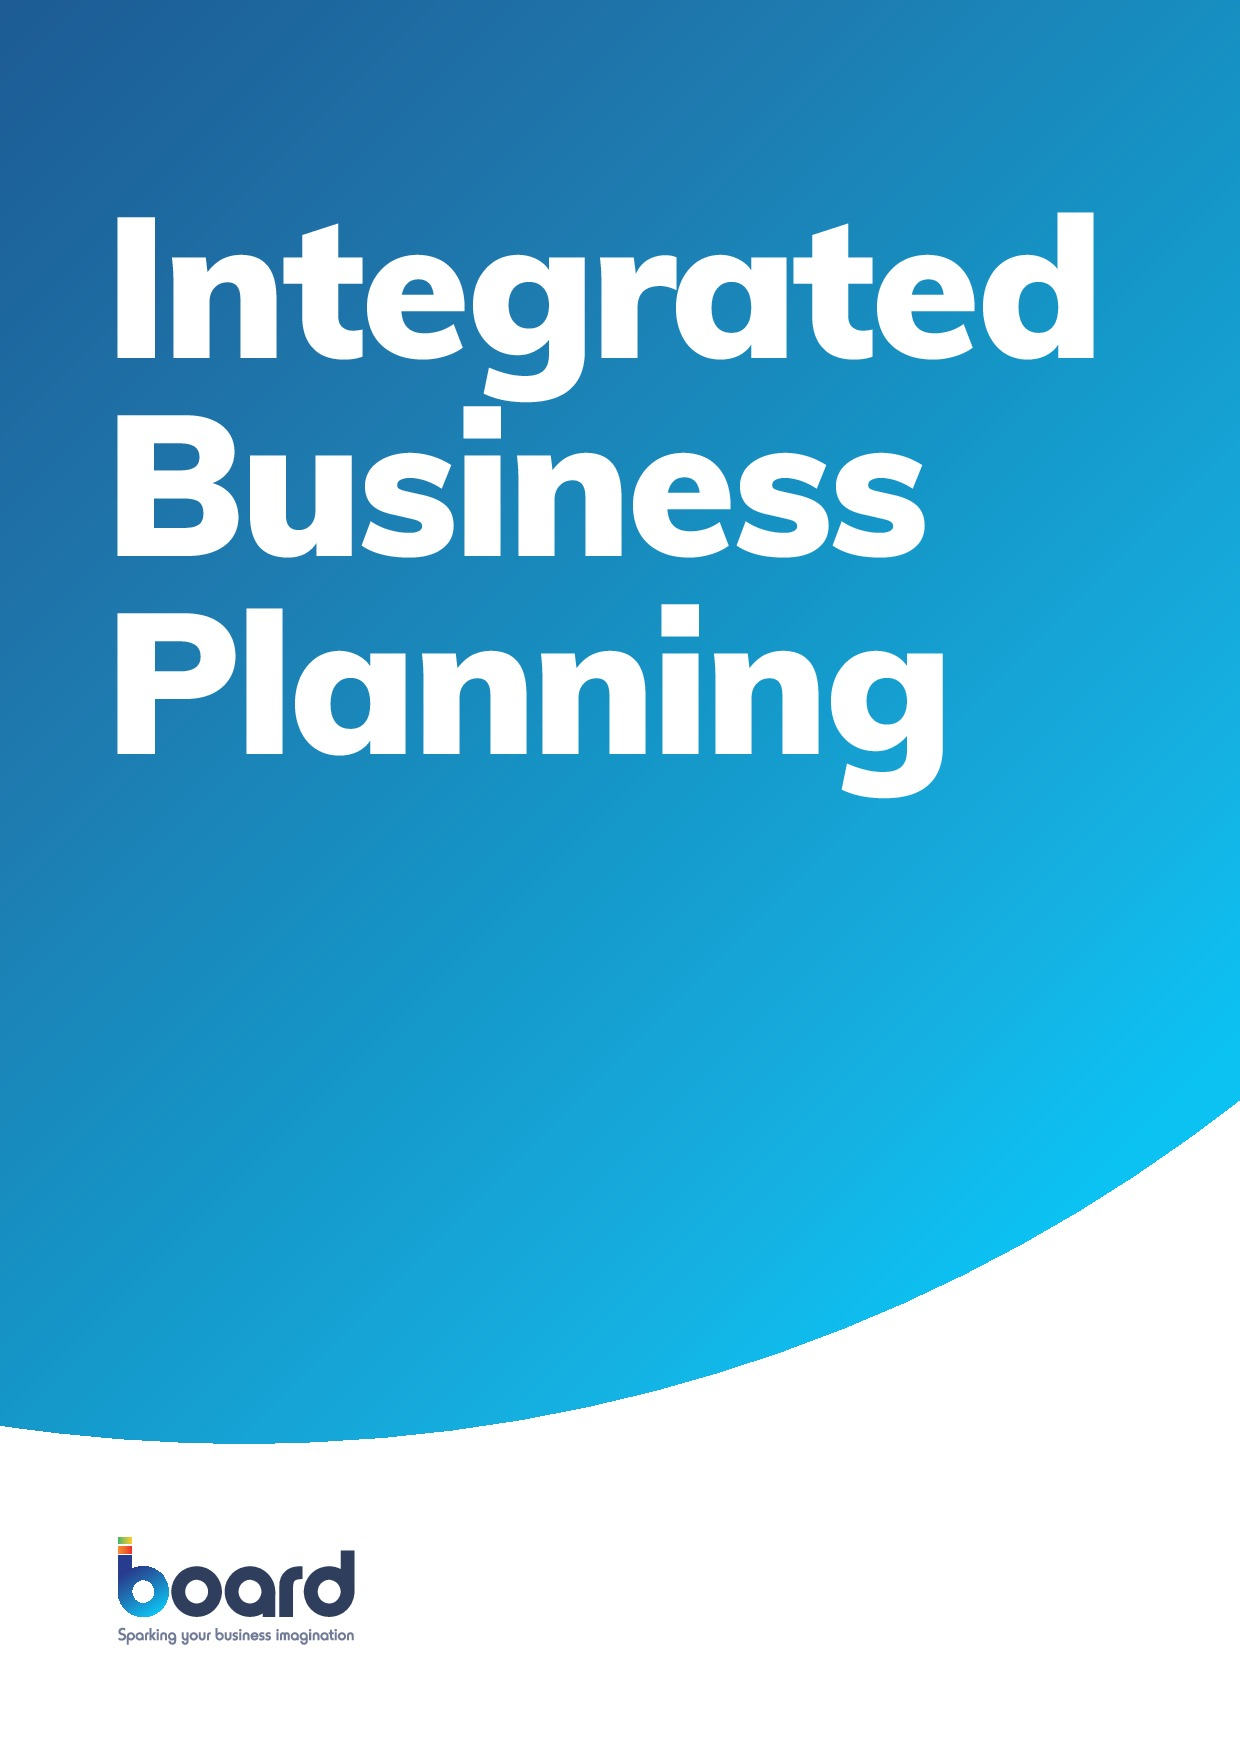 Integrated Business Planning | Page 1